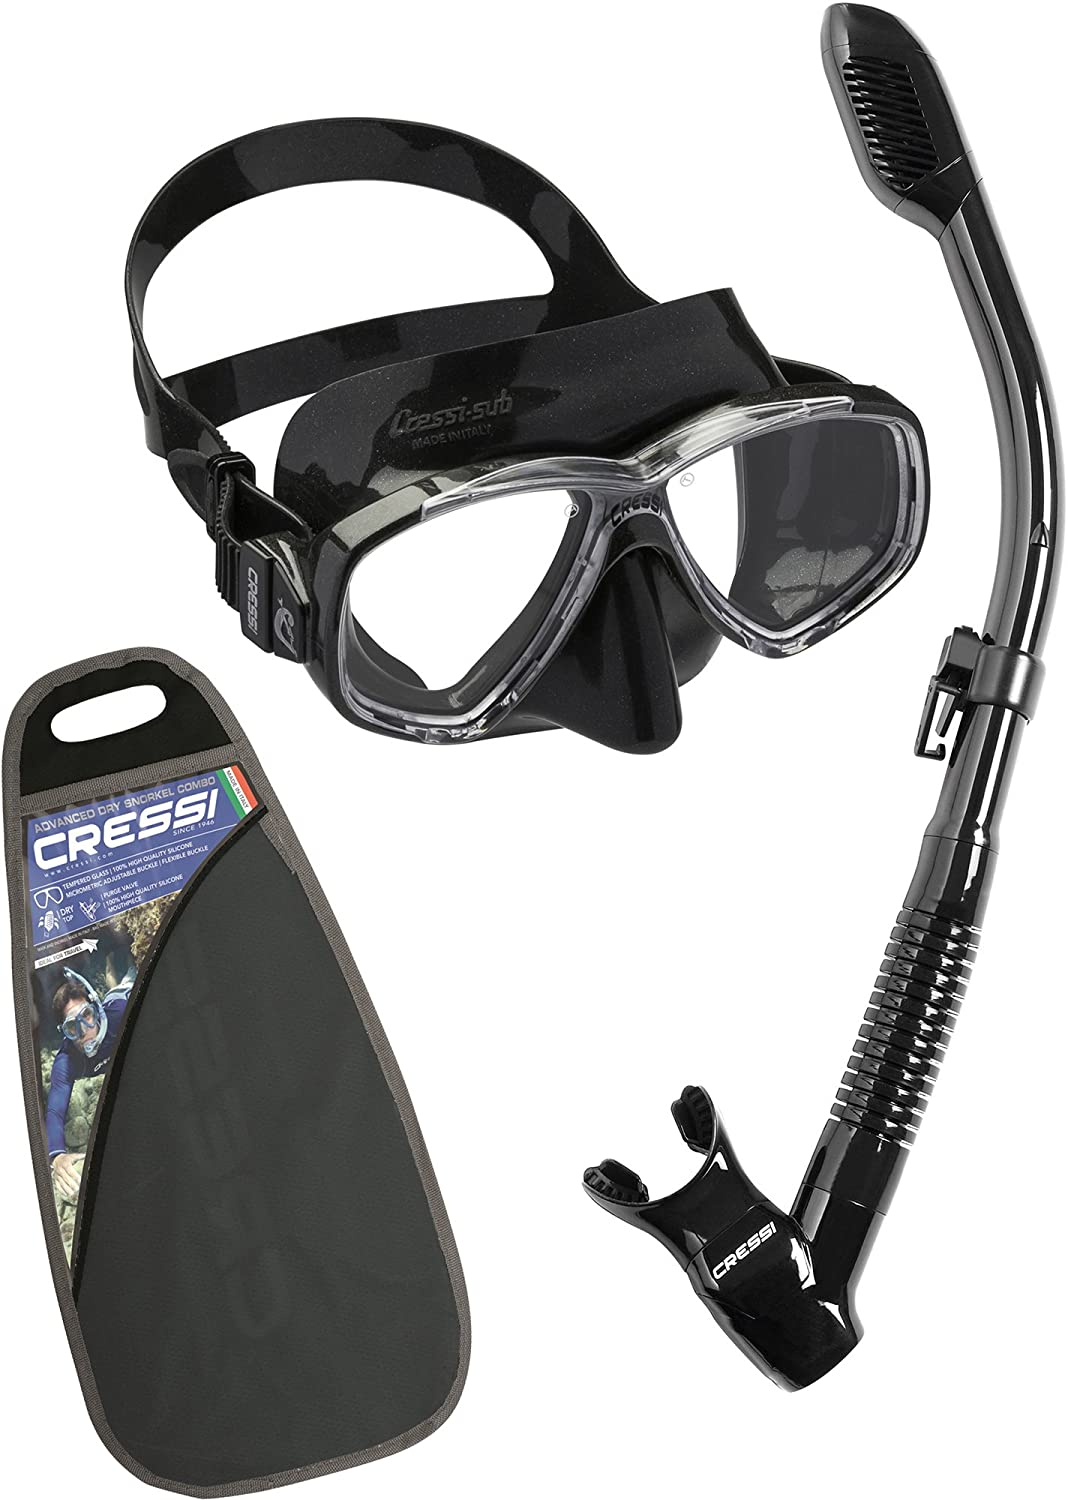 Amazon.com : Cressi Perla & Supernova Dry, black/black : Sports & Outdoors